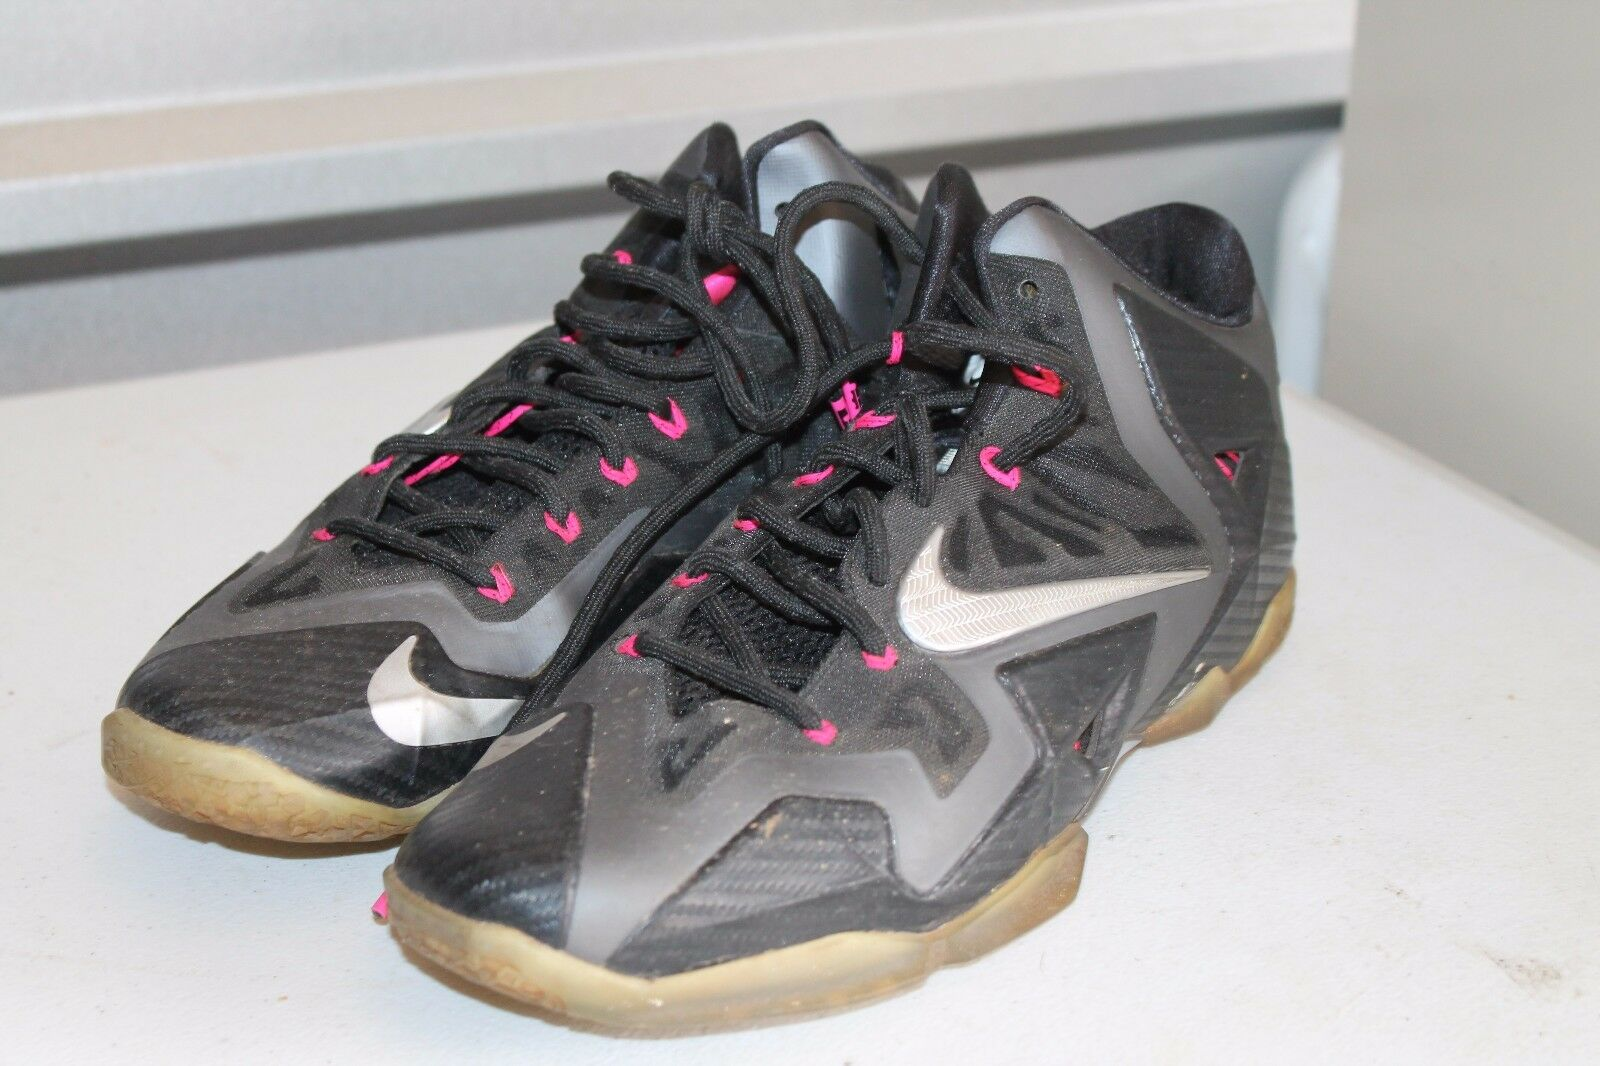 Nike Lebron XI Miami Nights 11 Black Carbon Silver Pink 616175-003 Sz 11